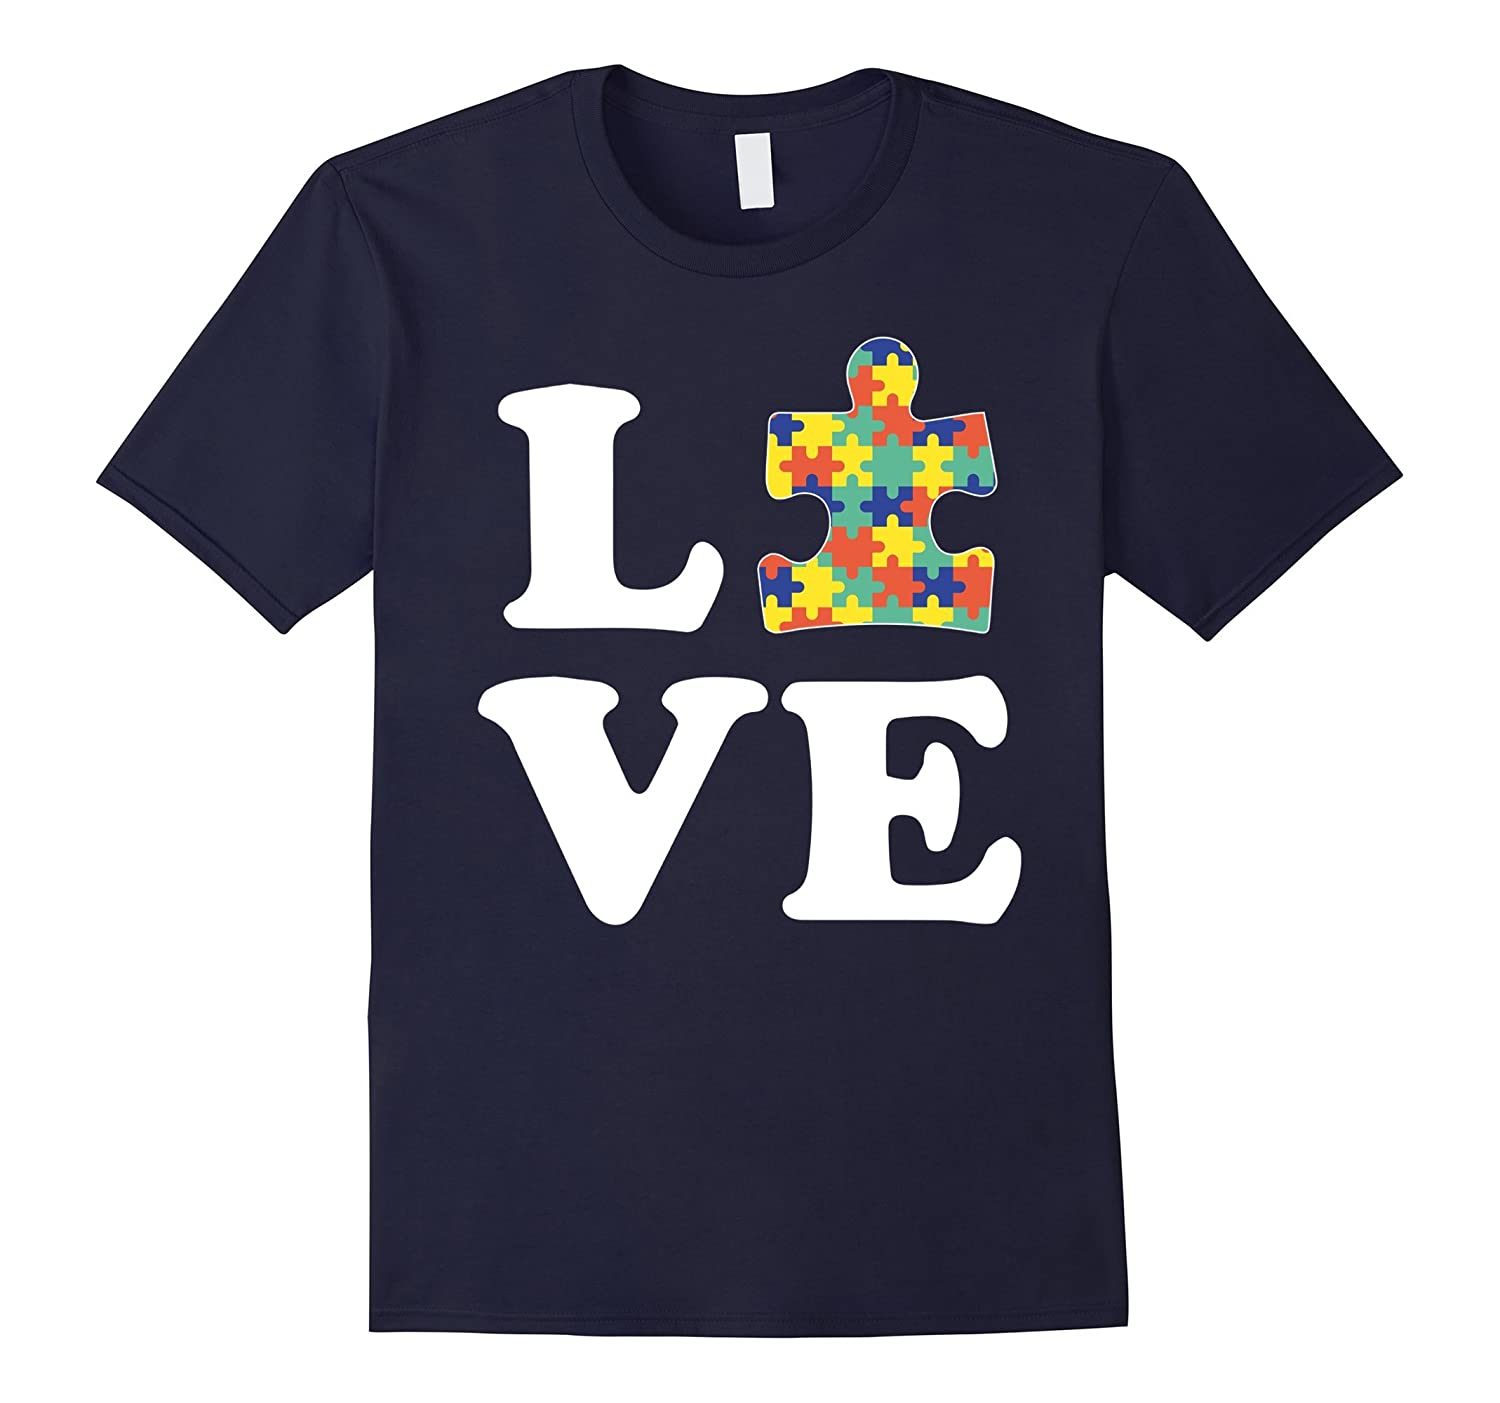 Autism Awareness Shirts - Autism T-shirt For Kids Men Moms-CD